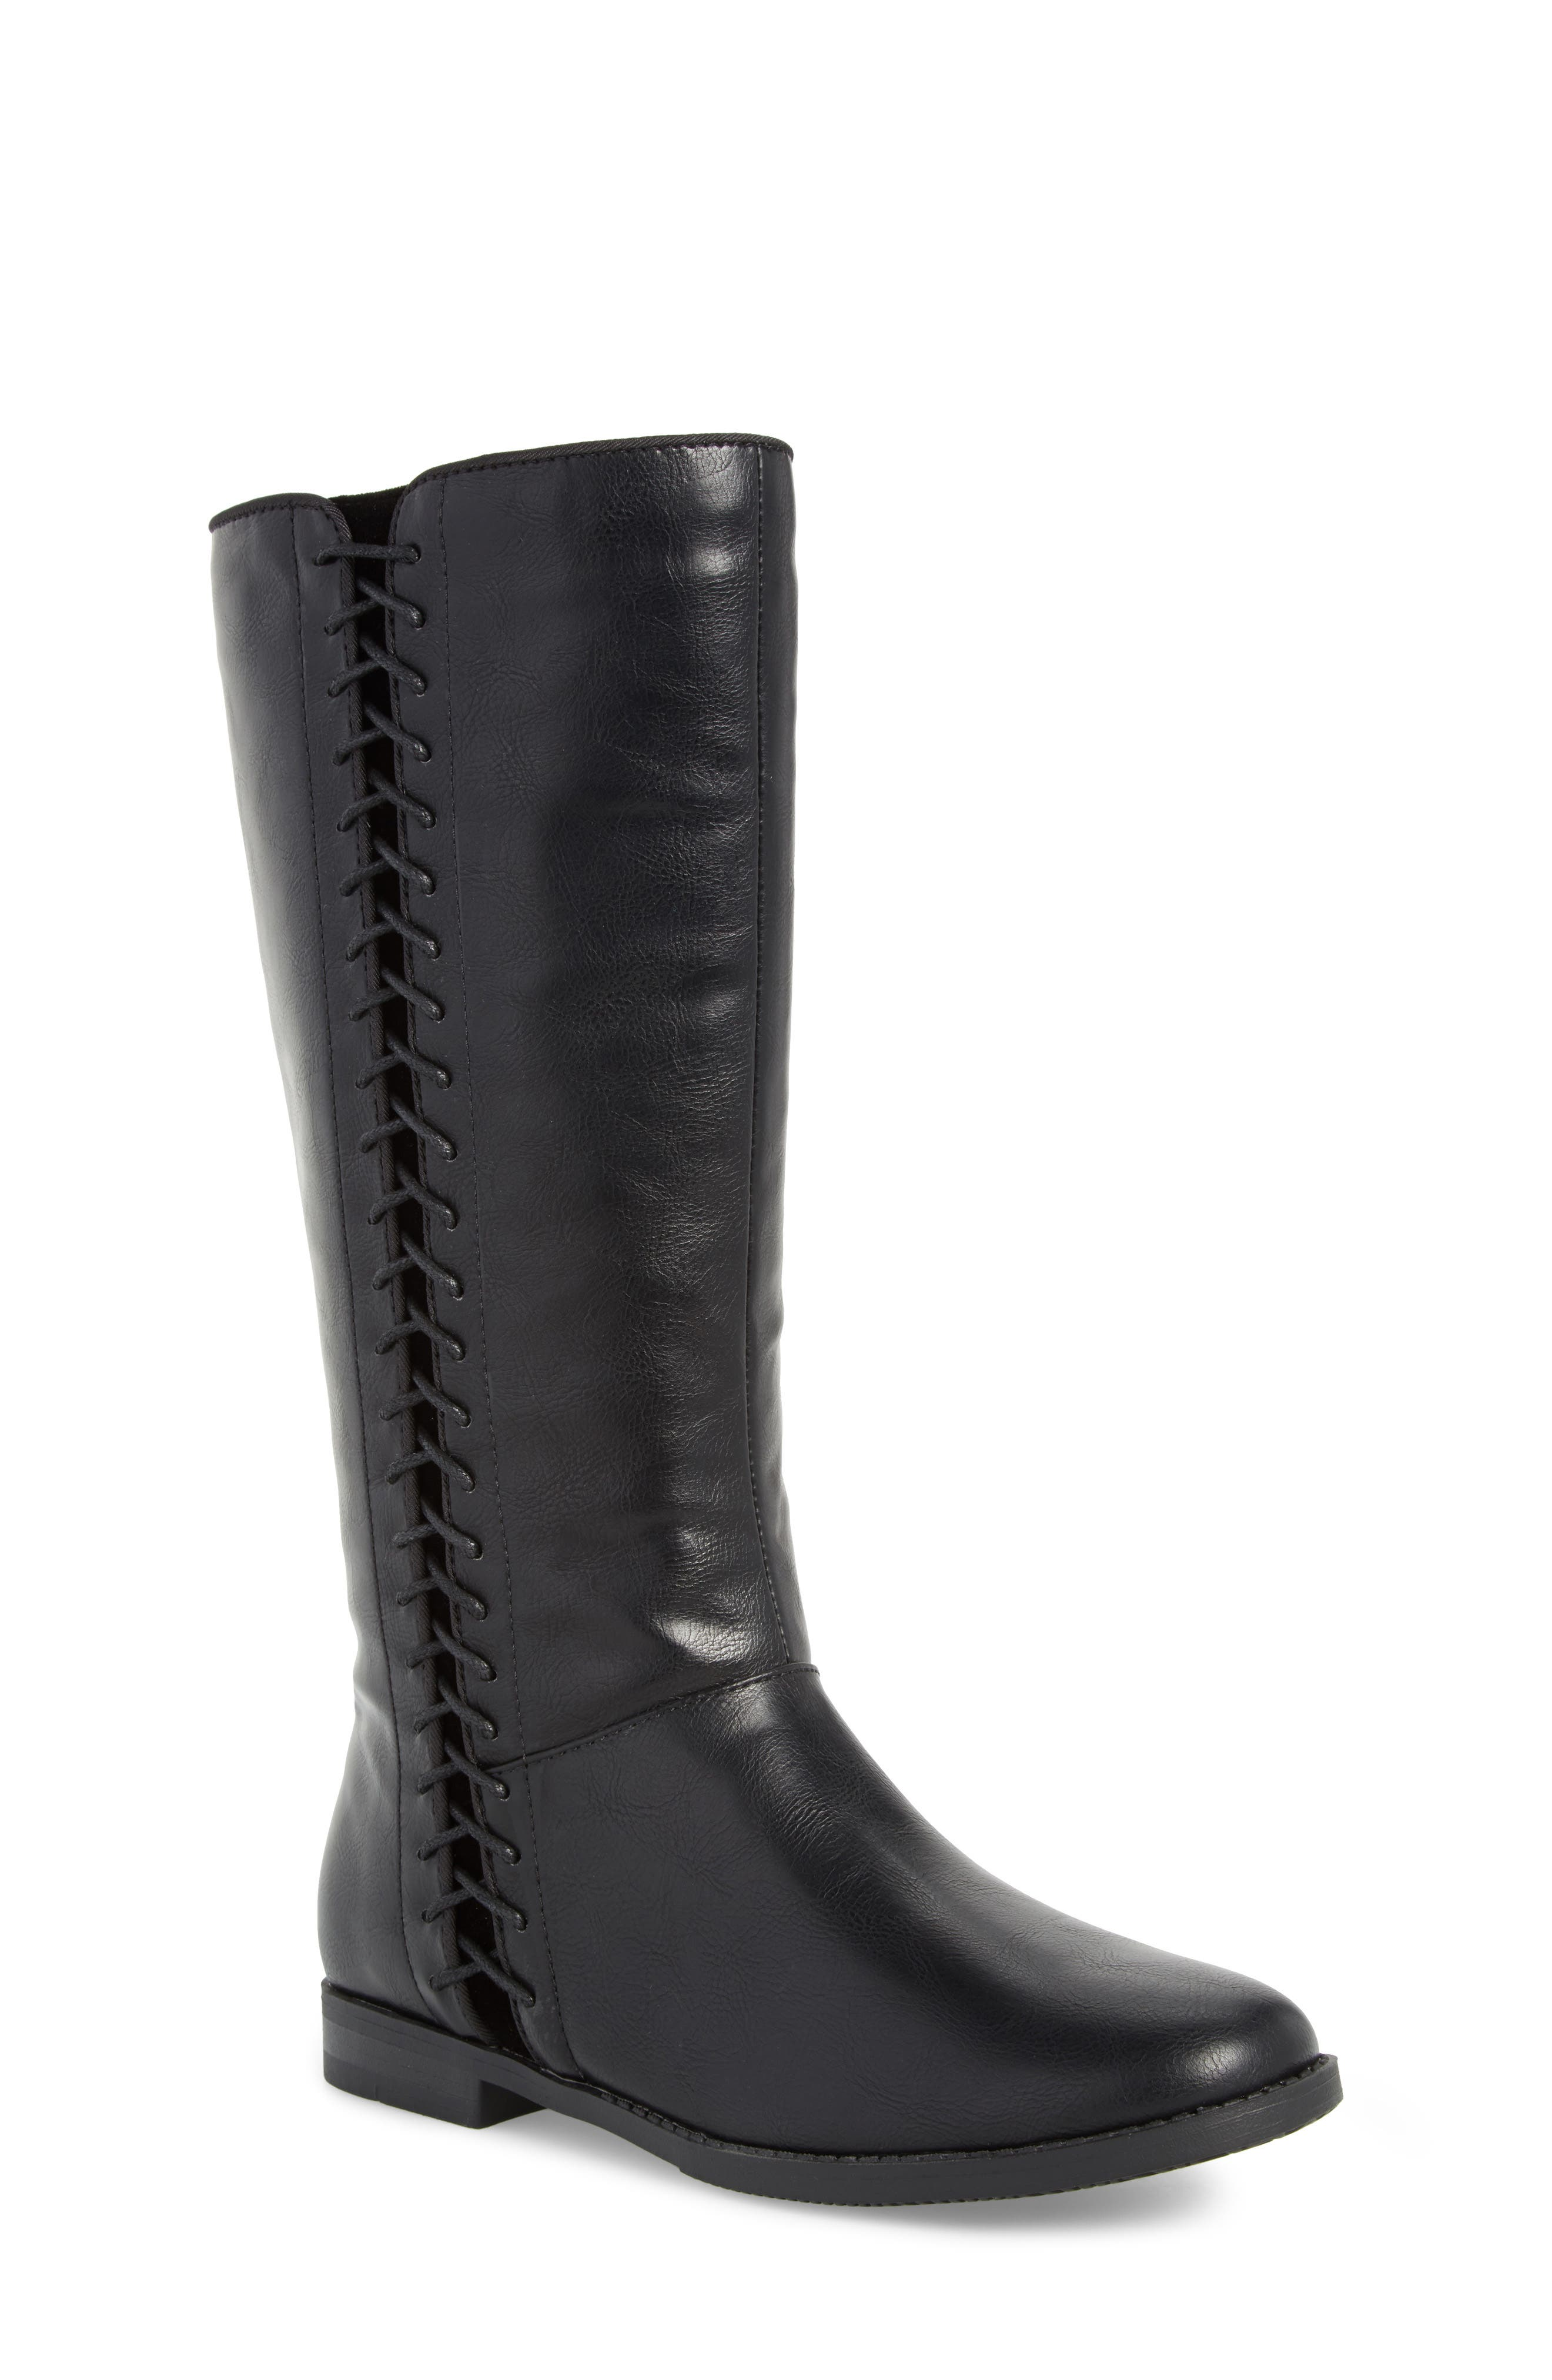 Alternate Image 1 Selected - Kenneth Cole New York Kennedy Laced Tall Boot (Toddler, Little Kid & Big Kid)